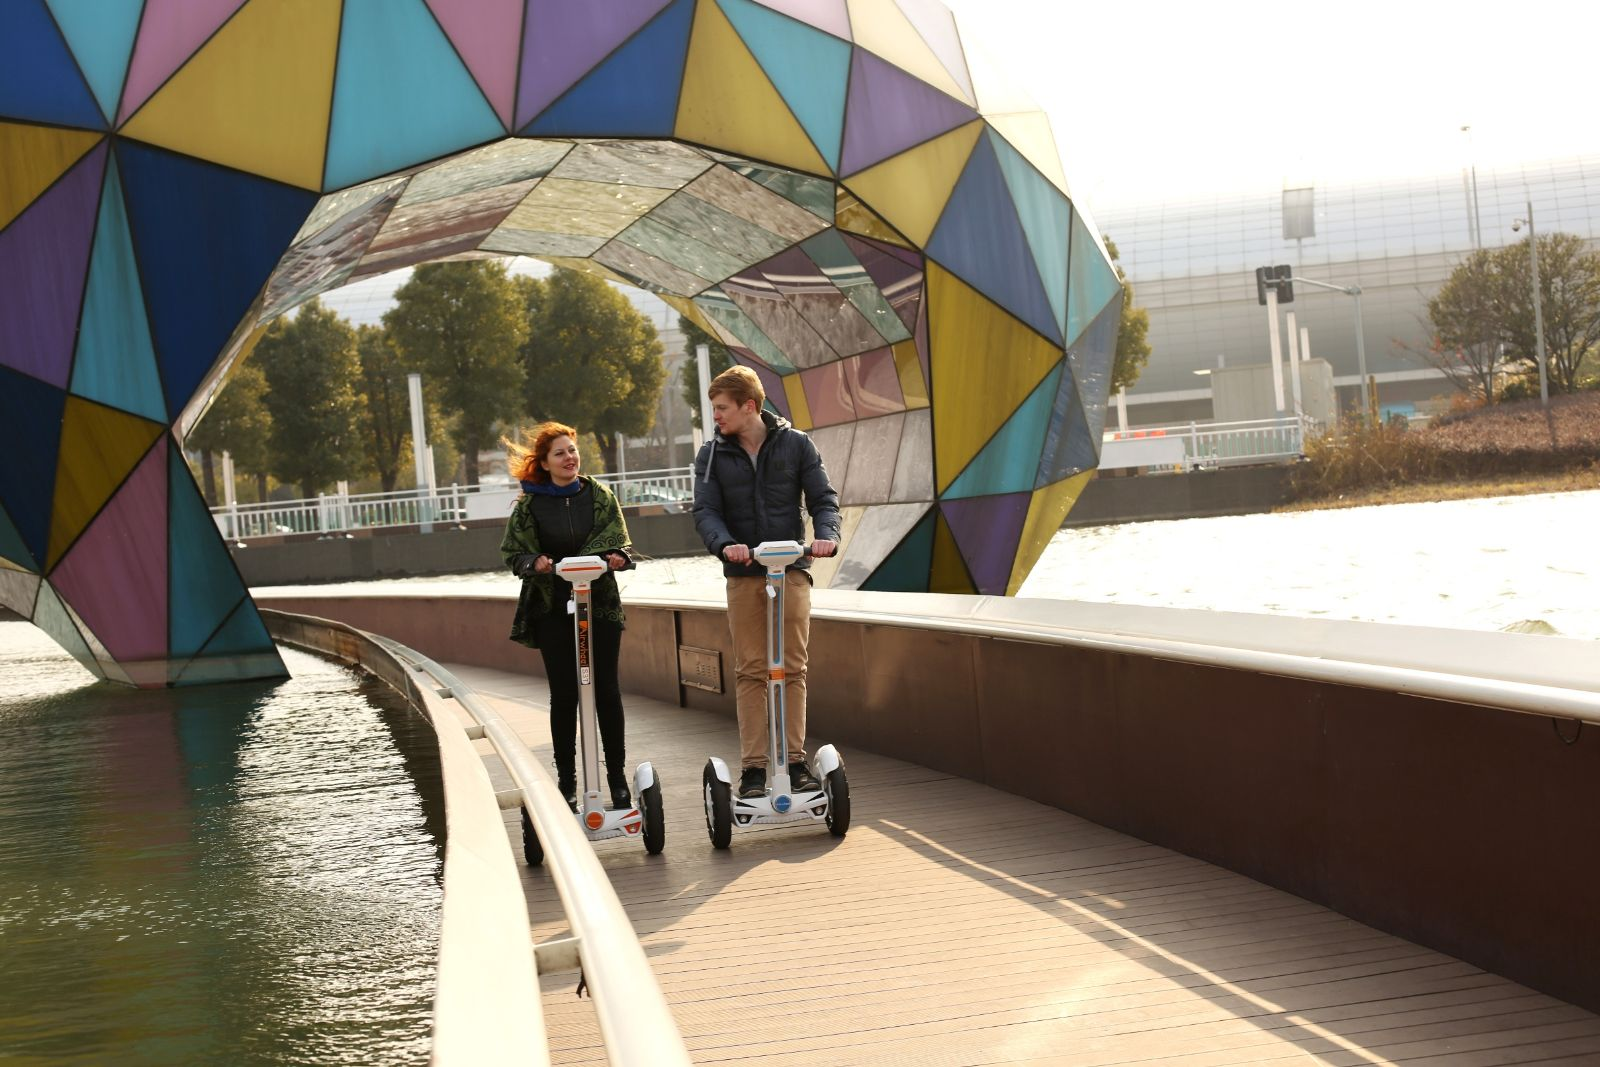 With Airwheel Electric Self-balancing Scooter, Protecting Environment Will No Longer Take Some Doing.